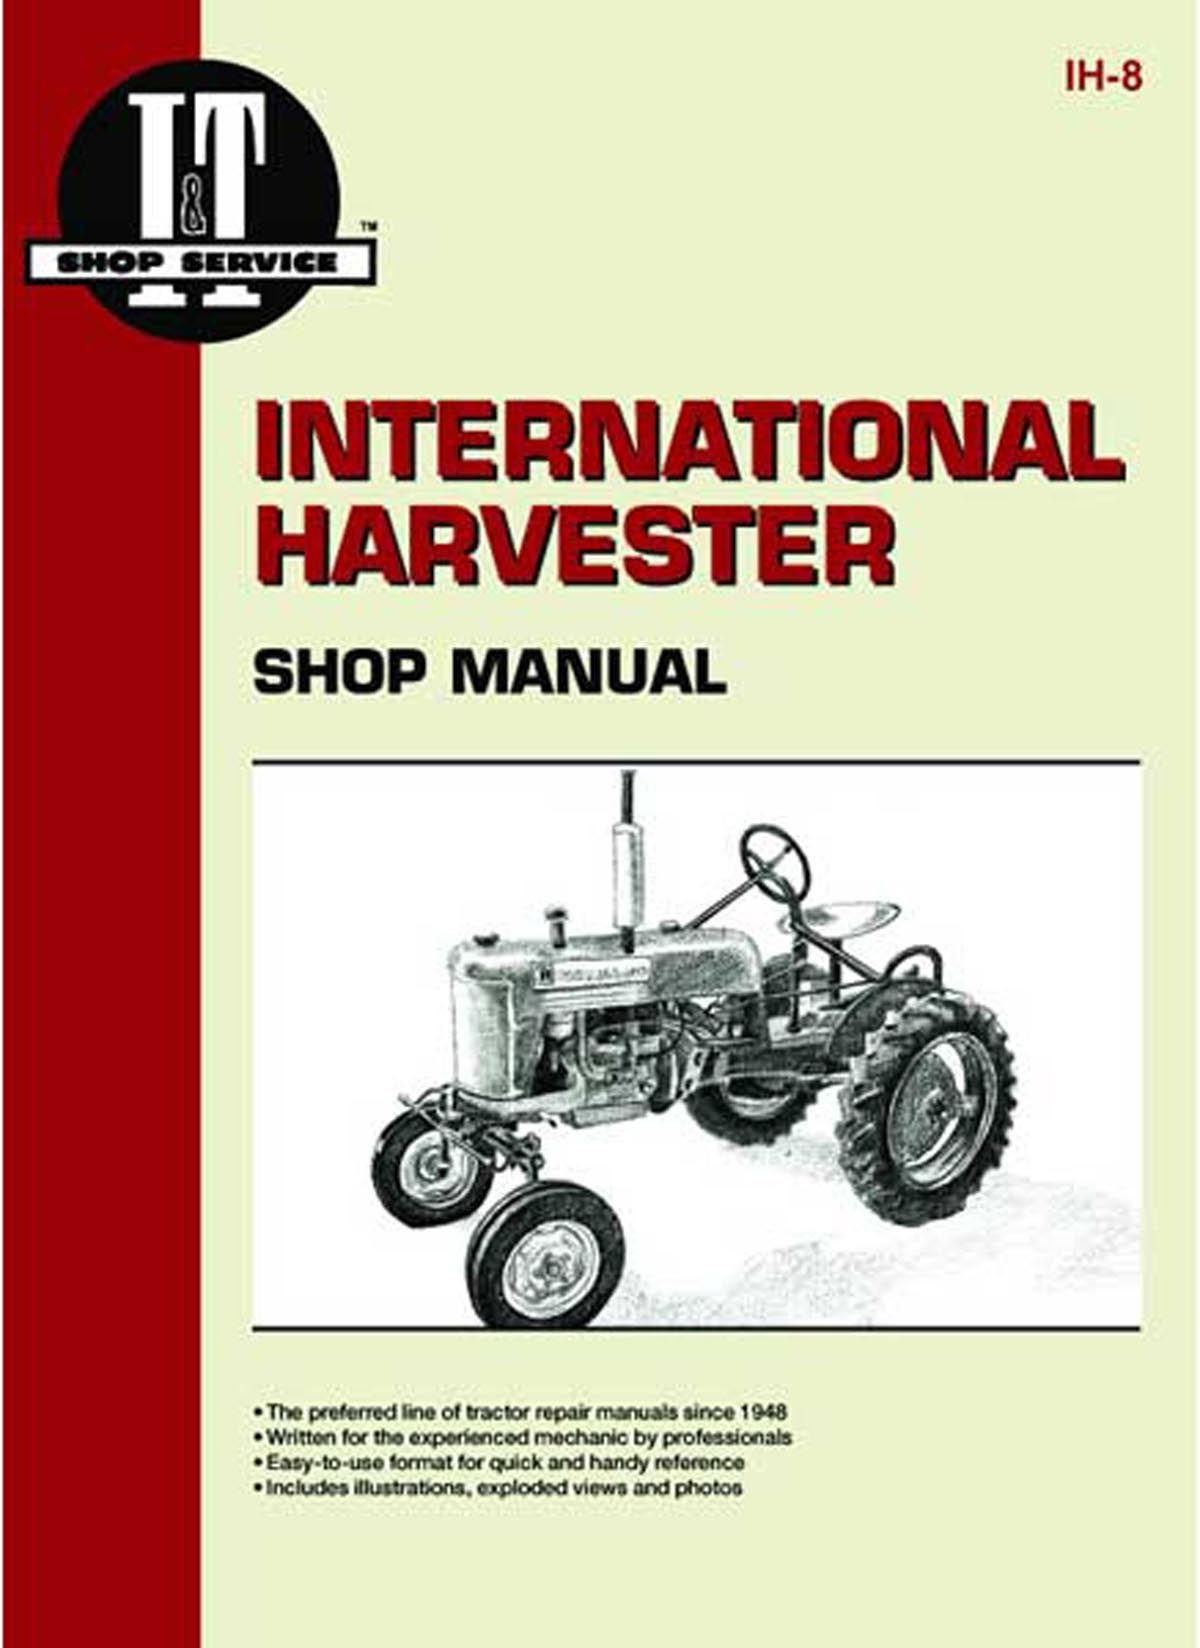 I & T SHOP SERVICE MANUAL - Farmall A, B, C, CUB,